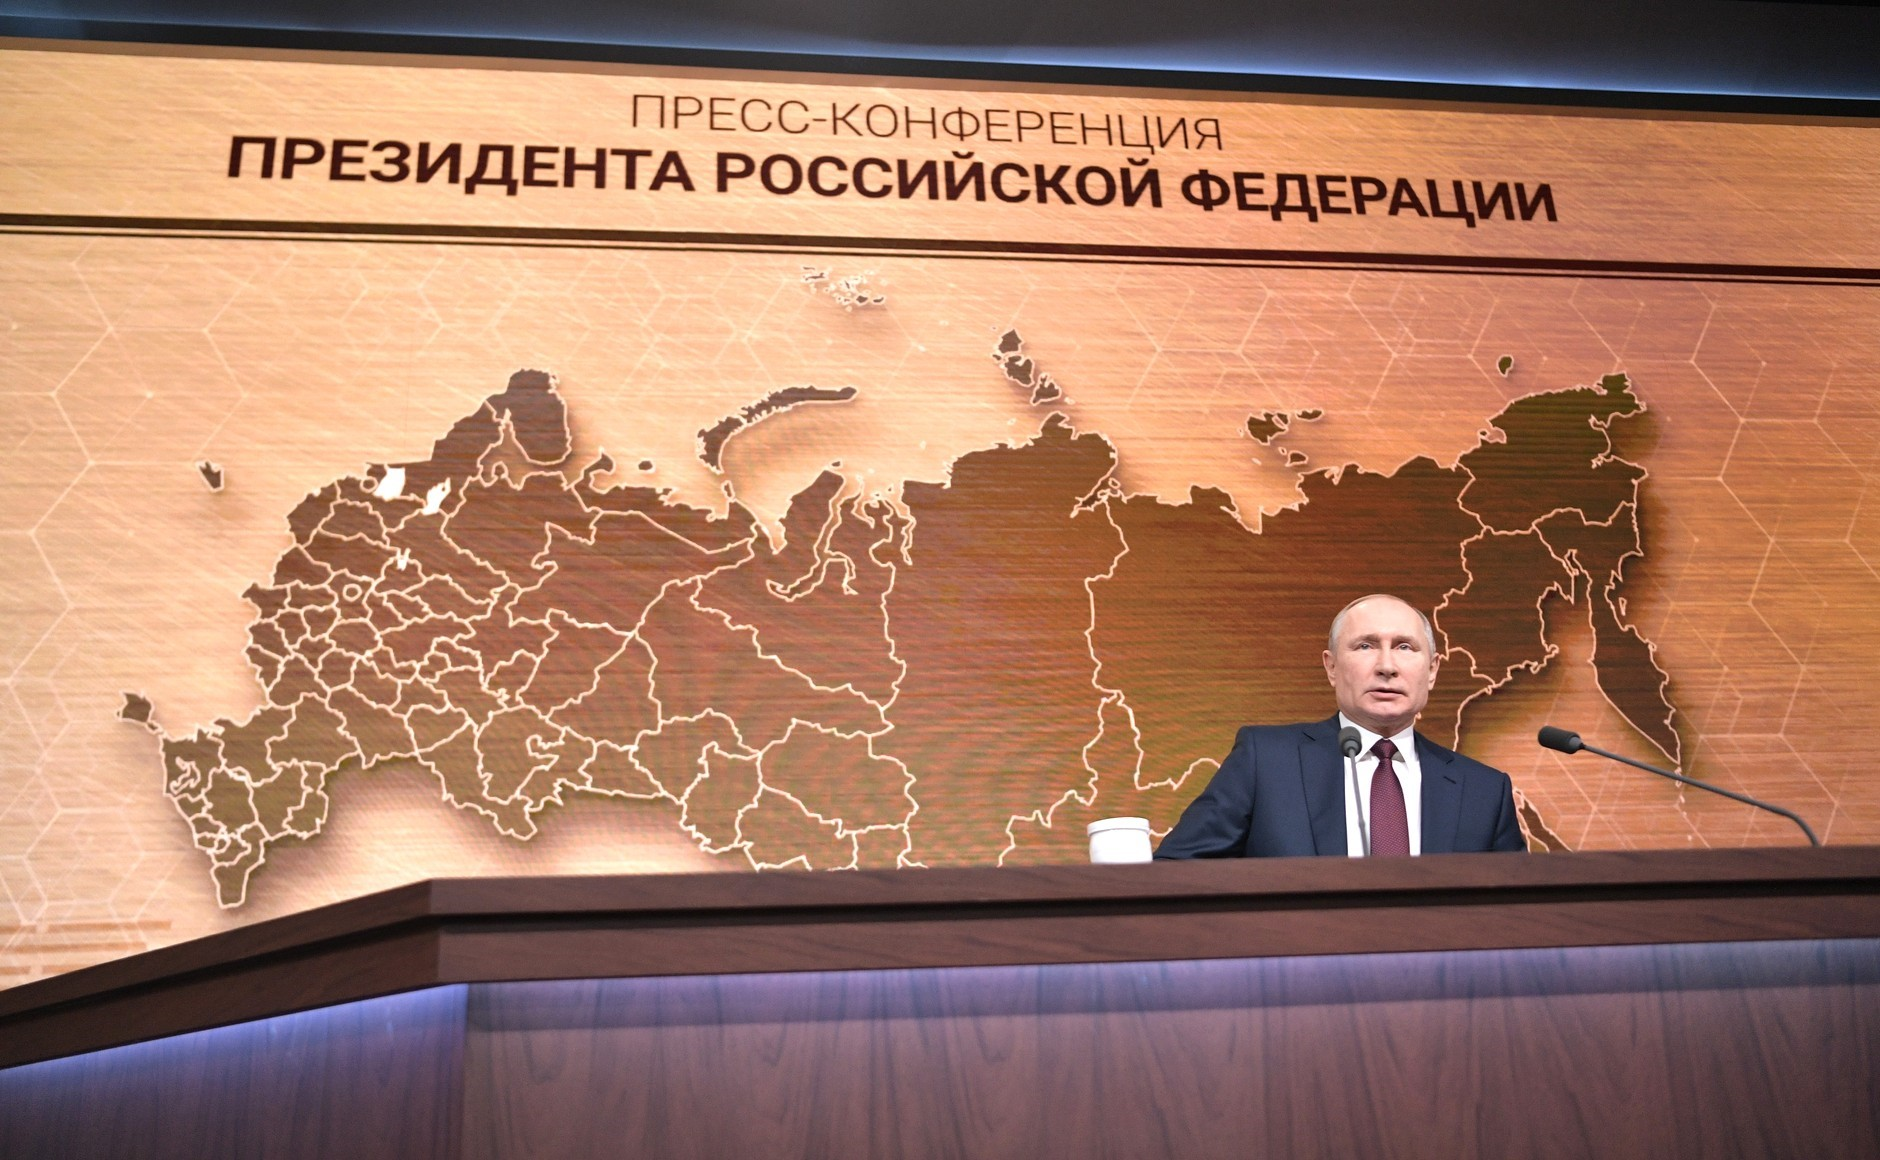 Stabilization Efforts High on Agenda of Putin's Annual News Conference